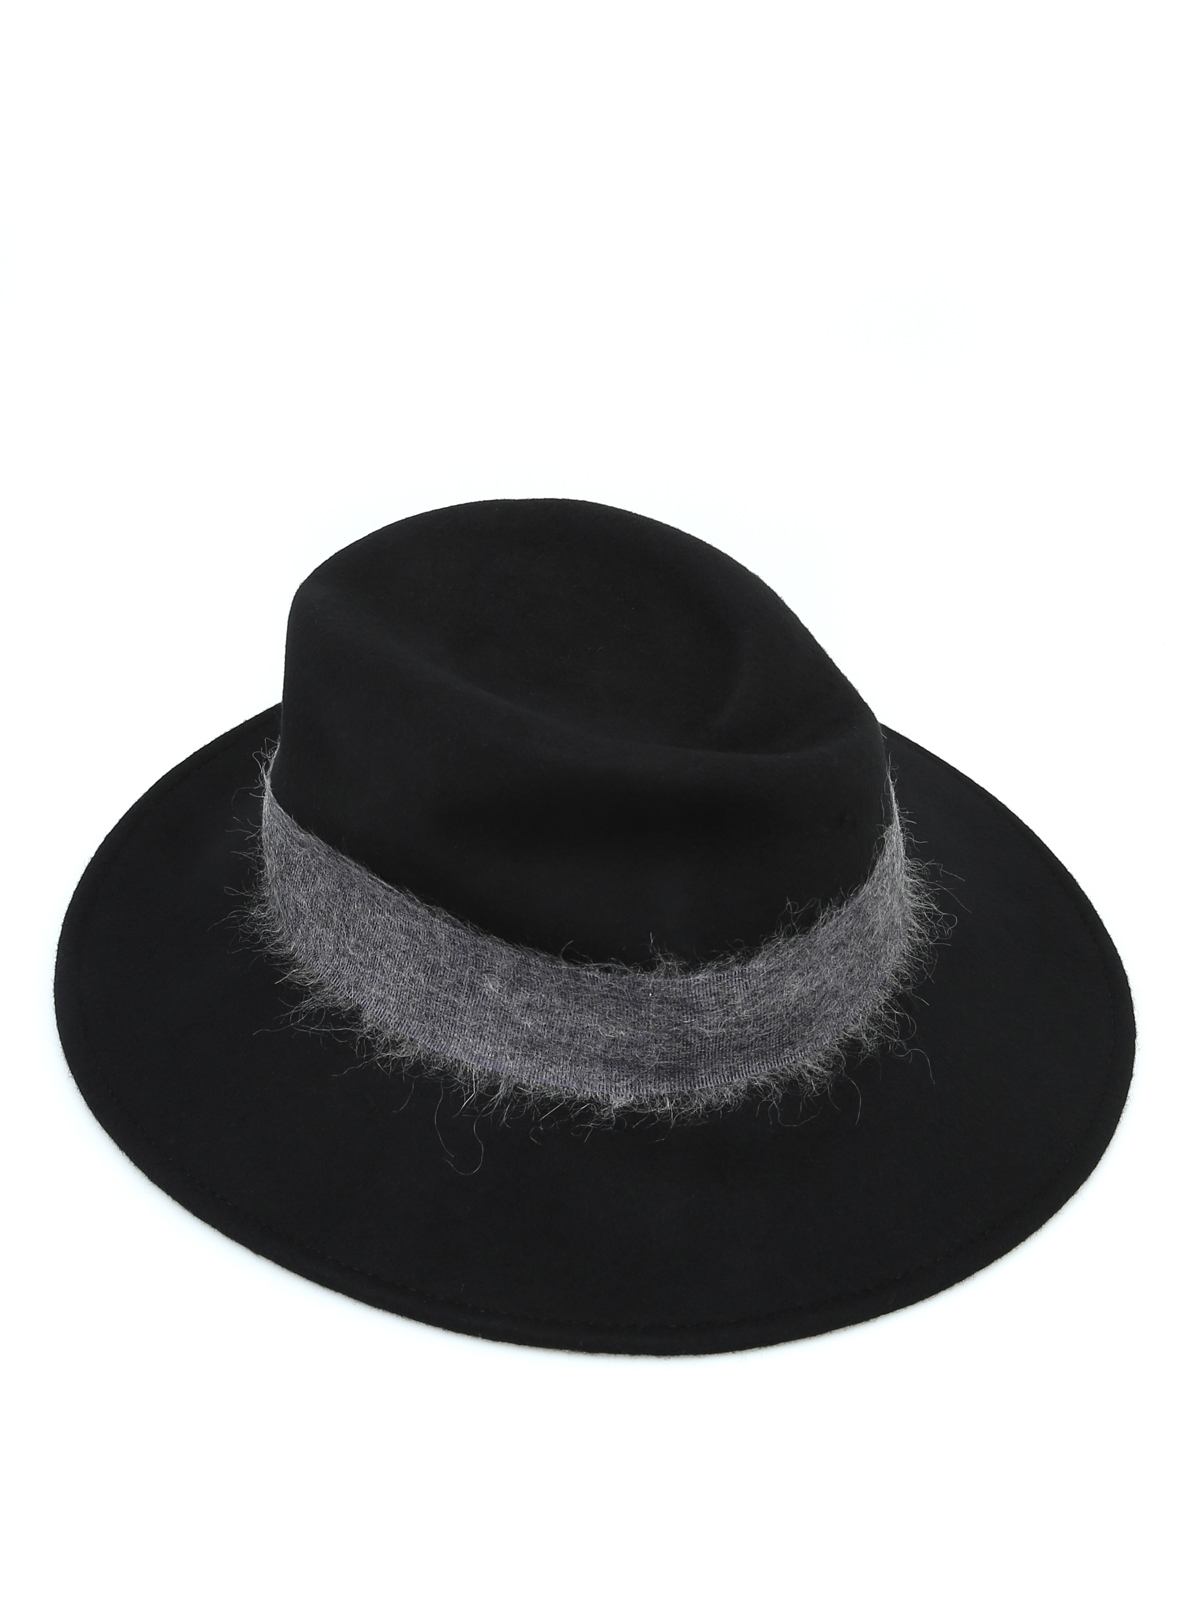 Woolrich - Felt hat with contrasting wide band - hats   caps ... 42c209df913